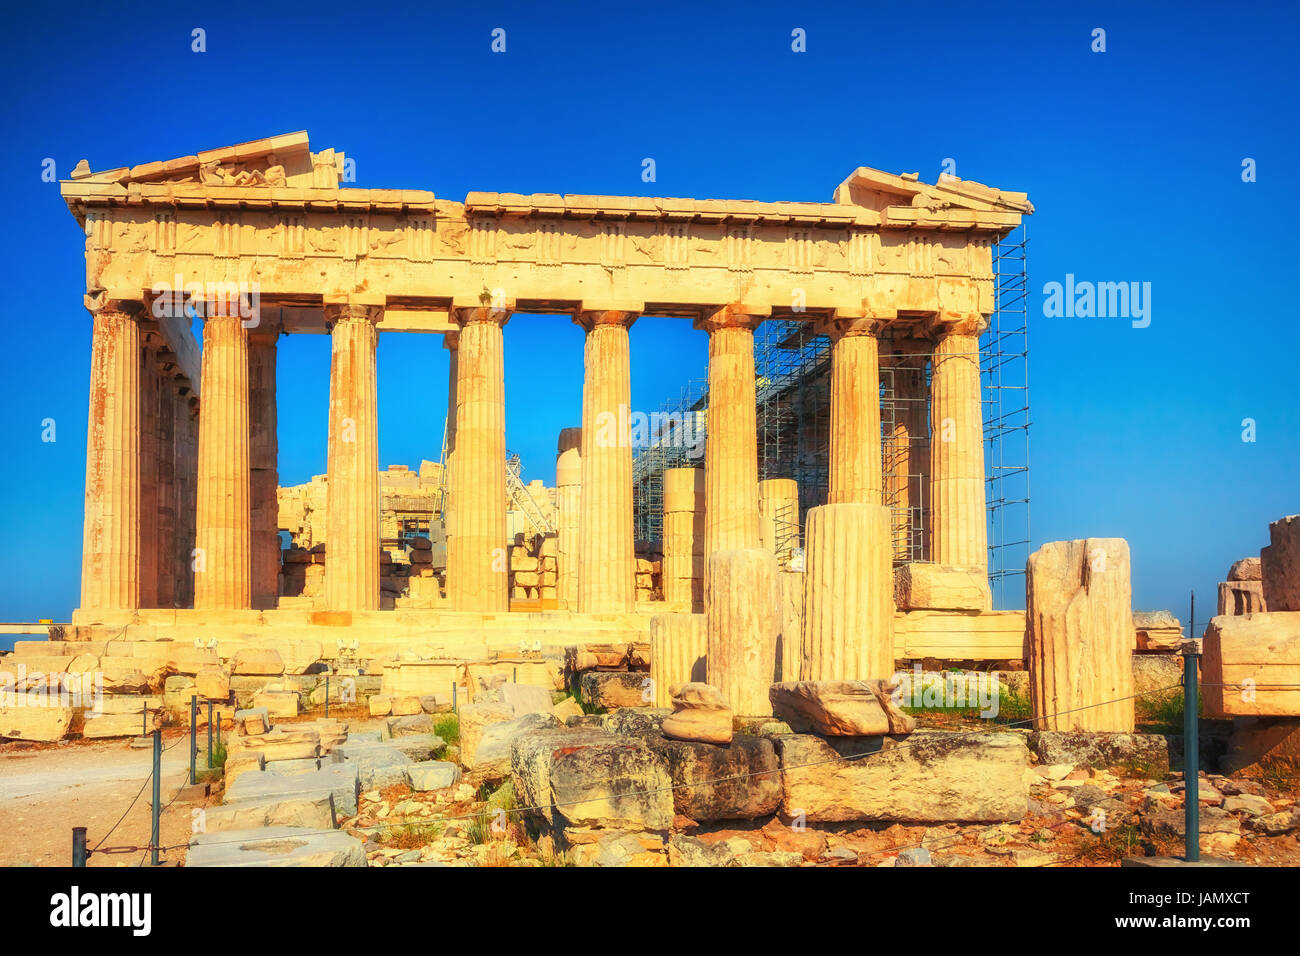 Parthenon in Acropolis of Athens at sunset - Stock Image